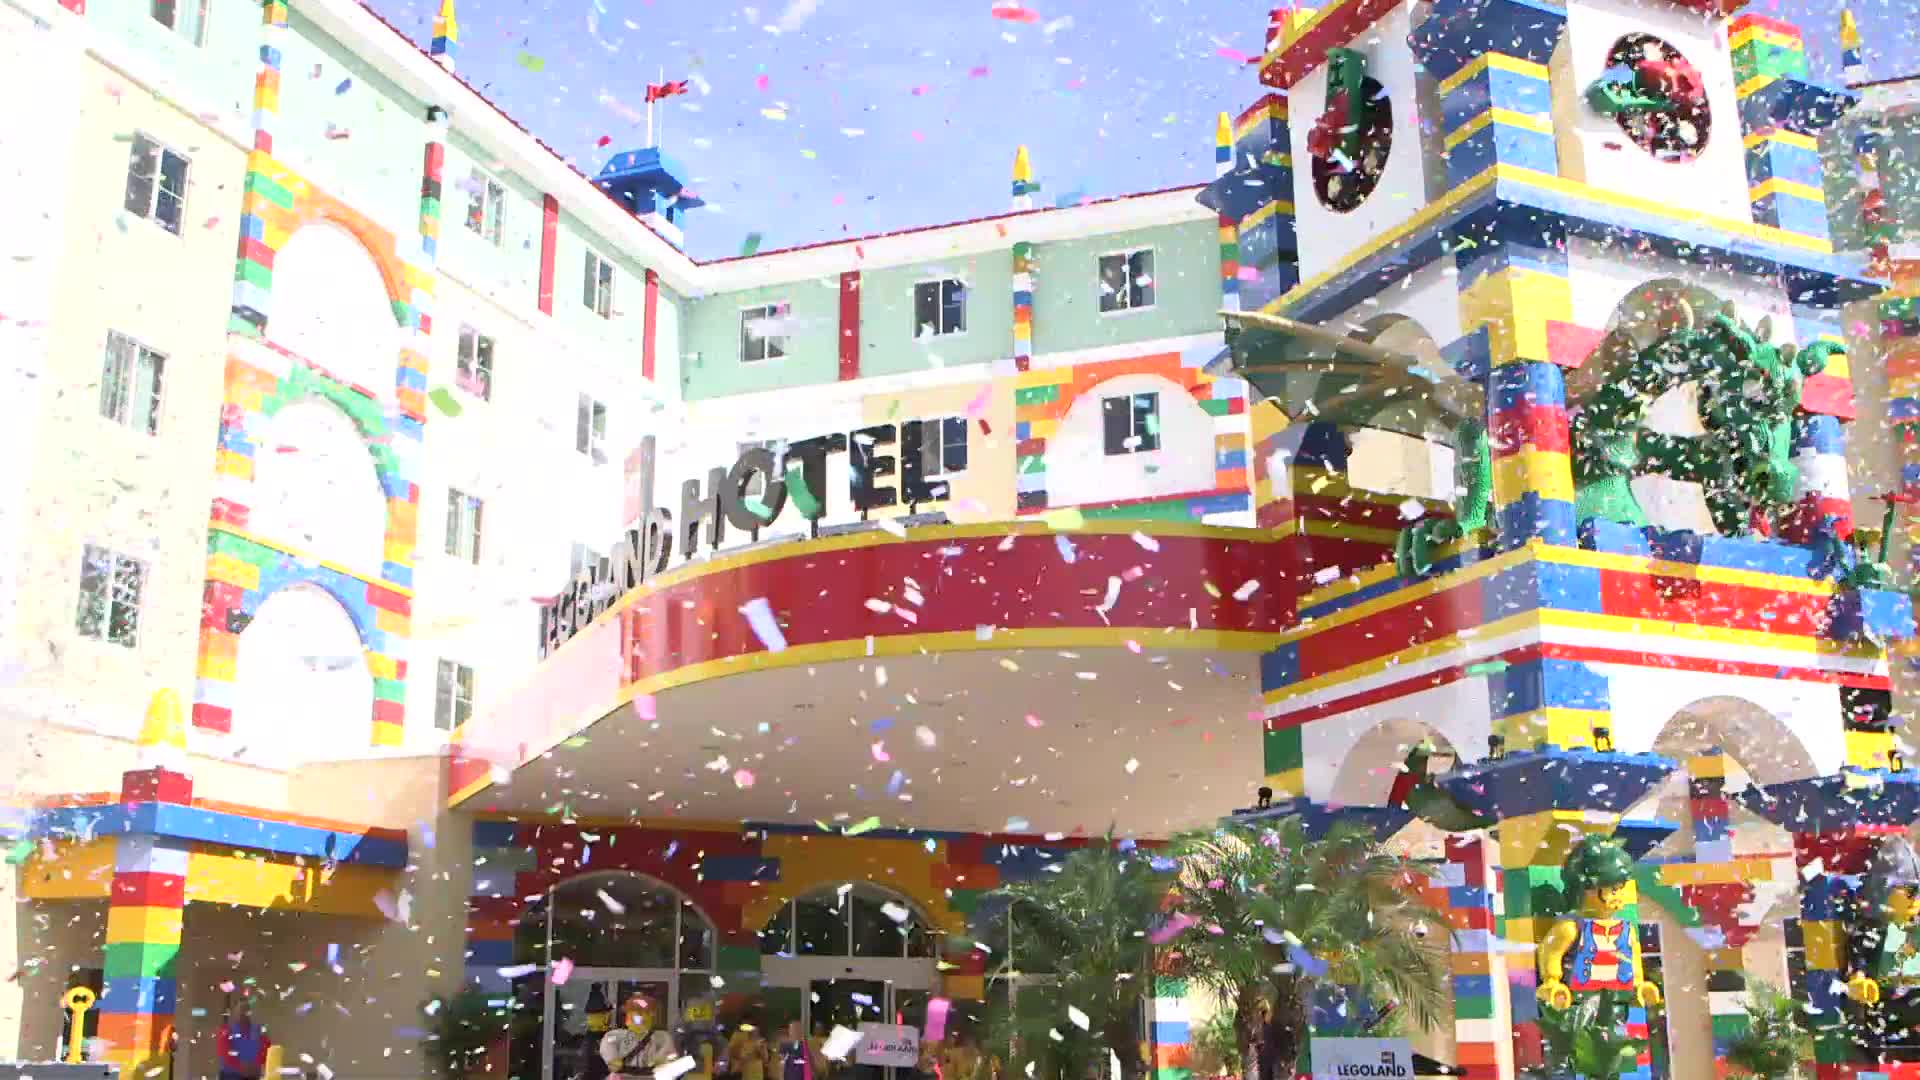 LEGOLAND-Florida-Resort-Hotel-Grand-Opening-051515-1_10s